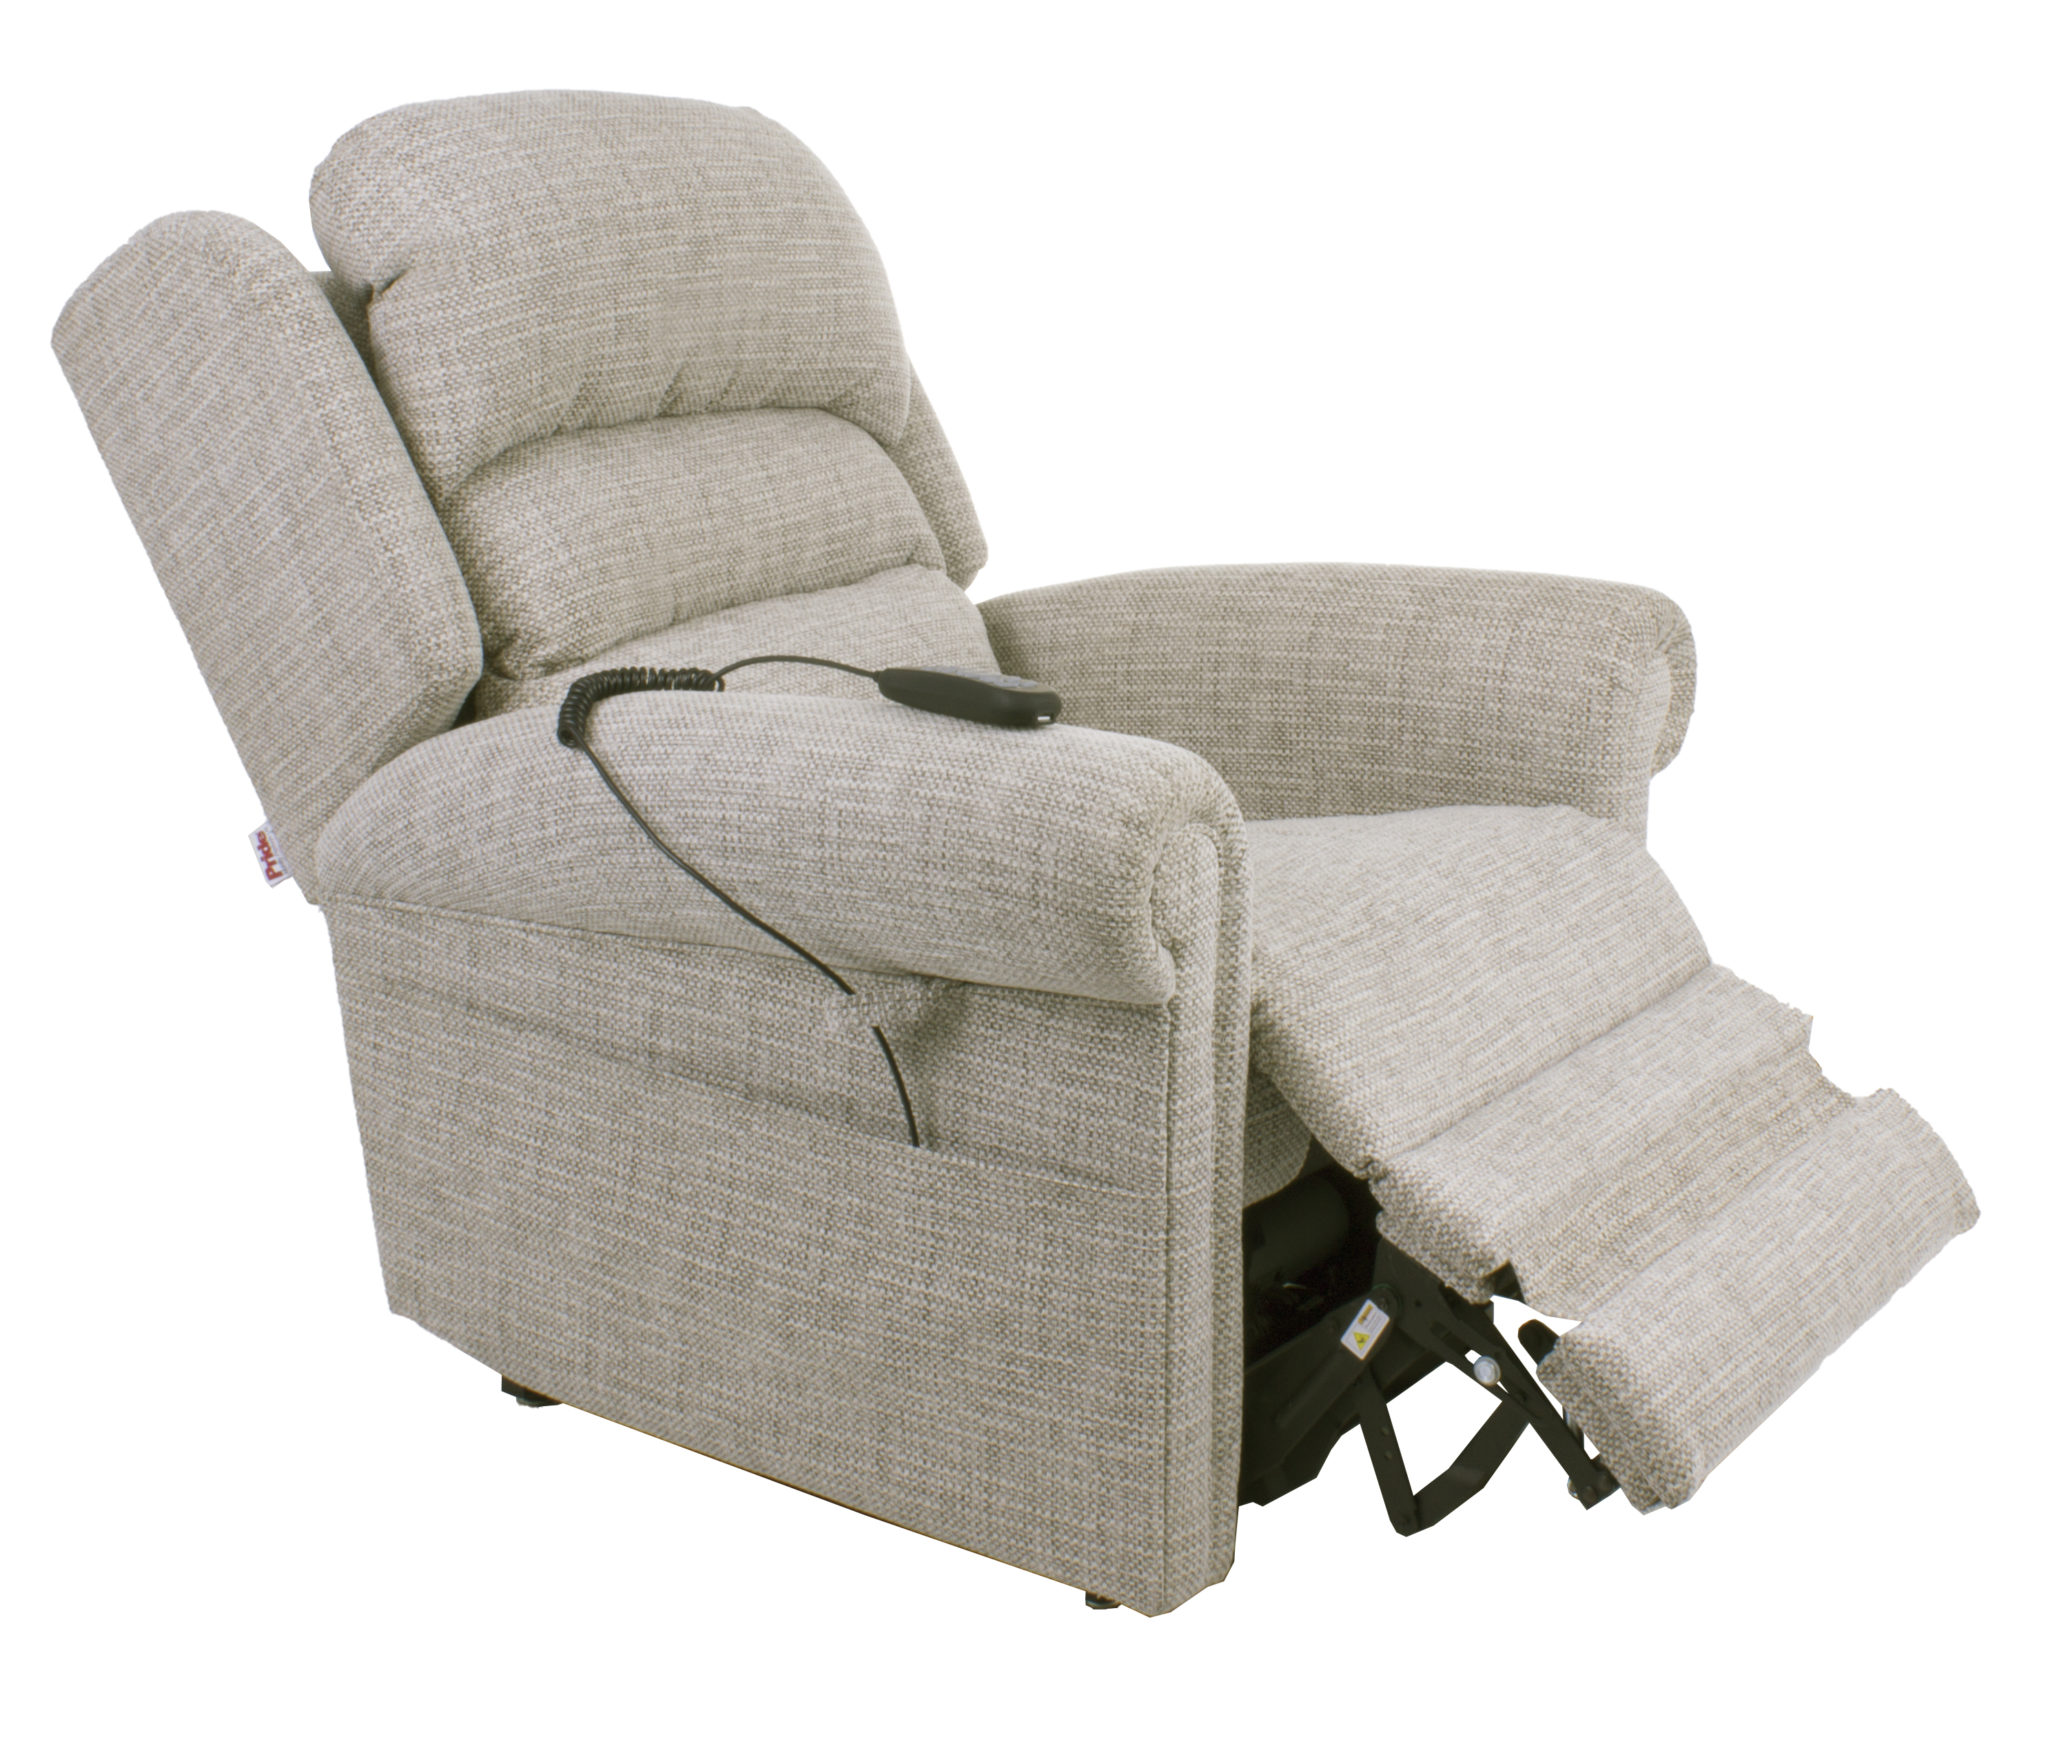 Riser Recliner Chairs Mobility North London